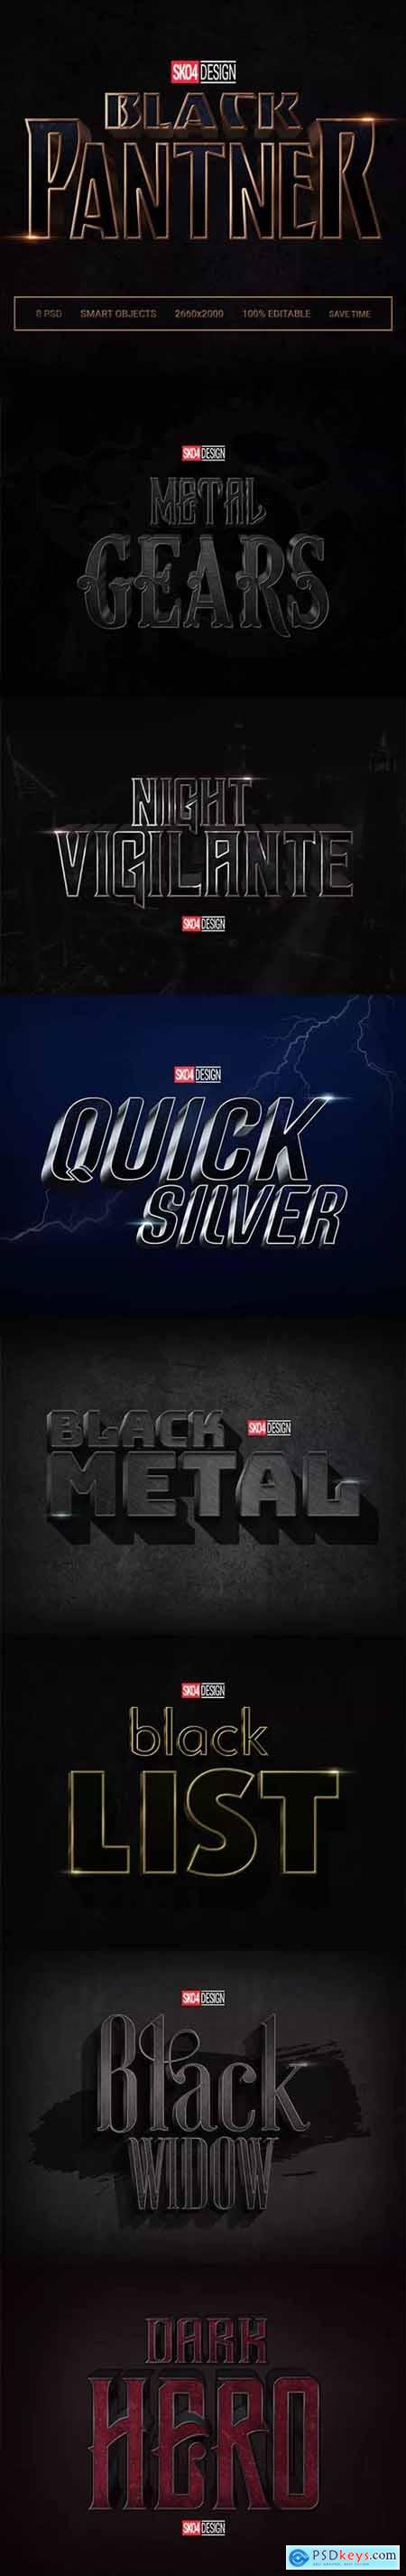 Black & Metal 3D 8 PSD Cinematic Effects